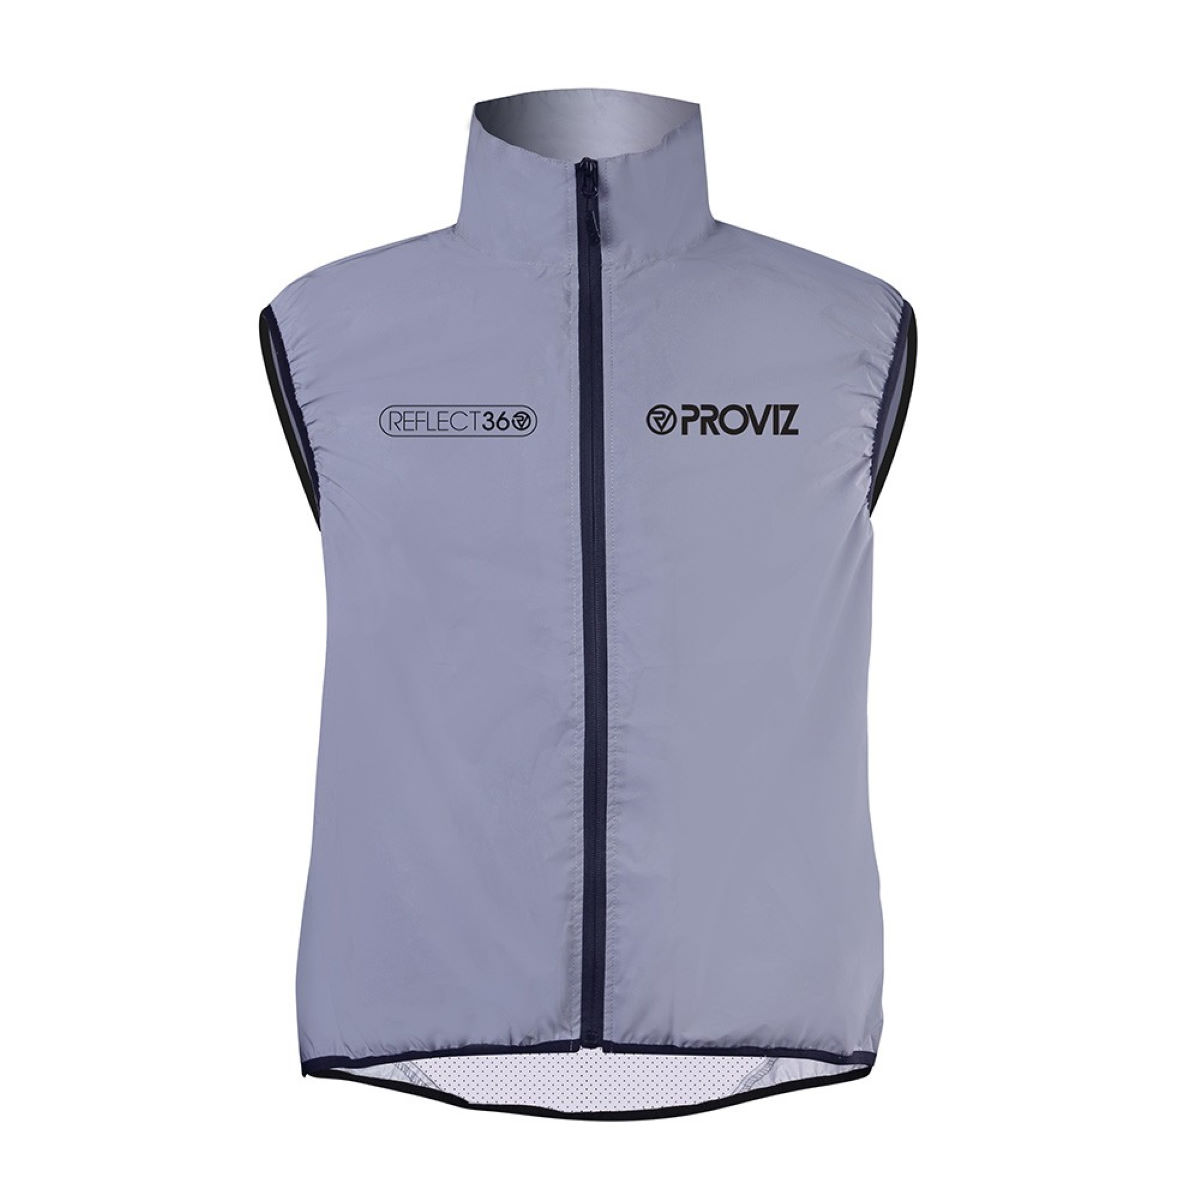 Gilet Proviz Reflect 360 (sans manches) - Large Reflective